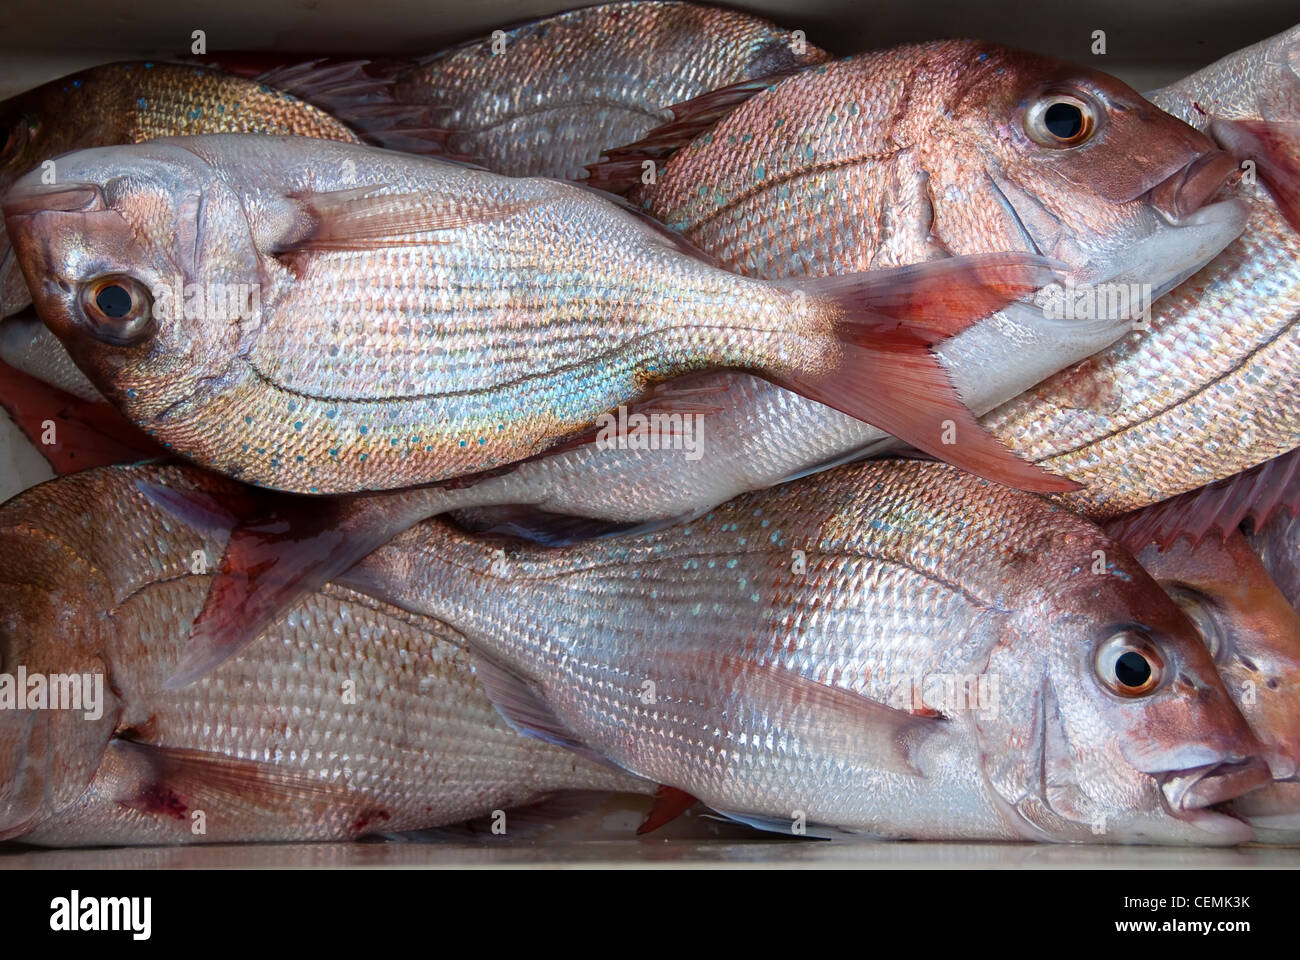 Fish bin full of fresh caught red snapper fish in New Zealand Stock Photo